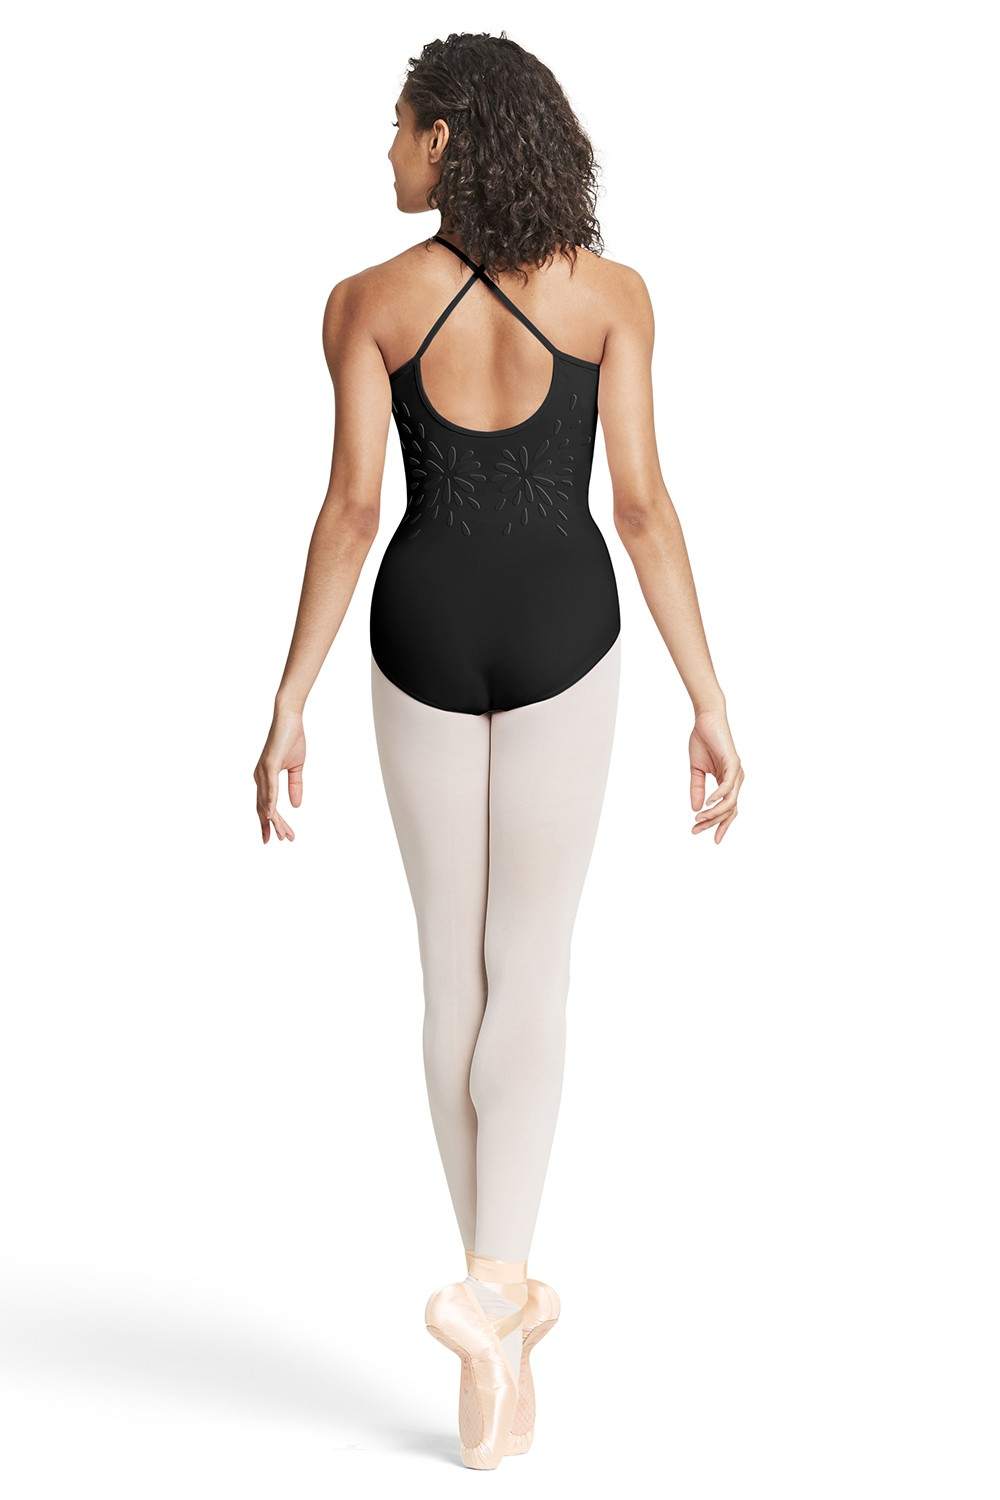 Cross Strap Camisole Leotard Women's Dance Leotards